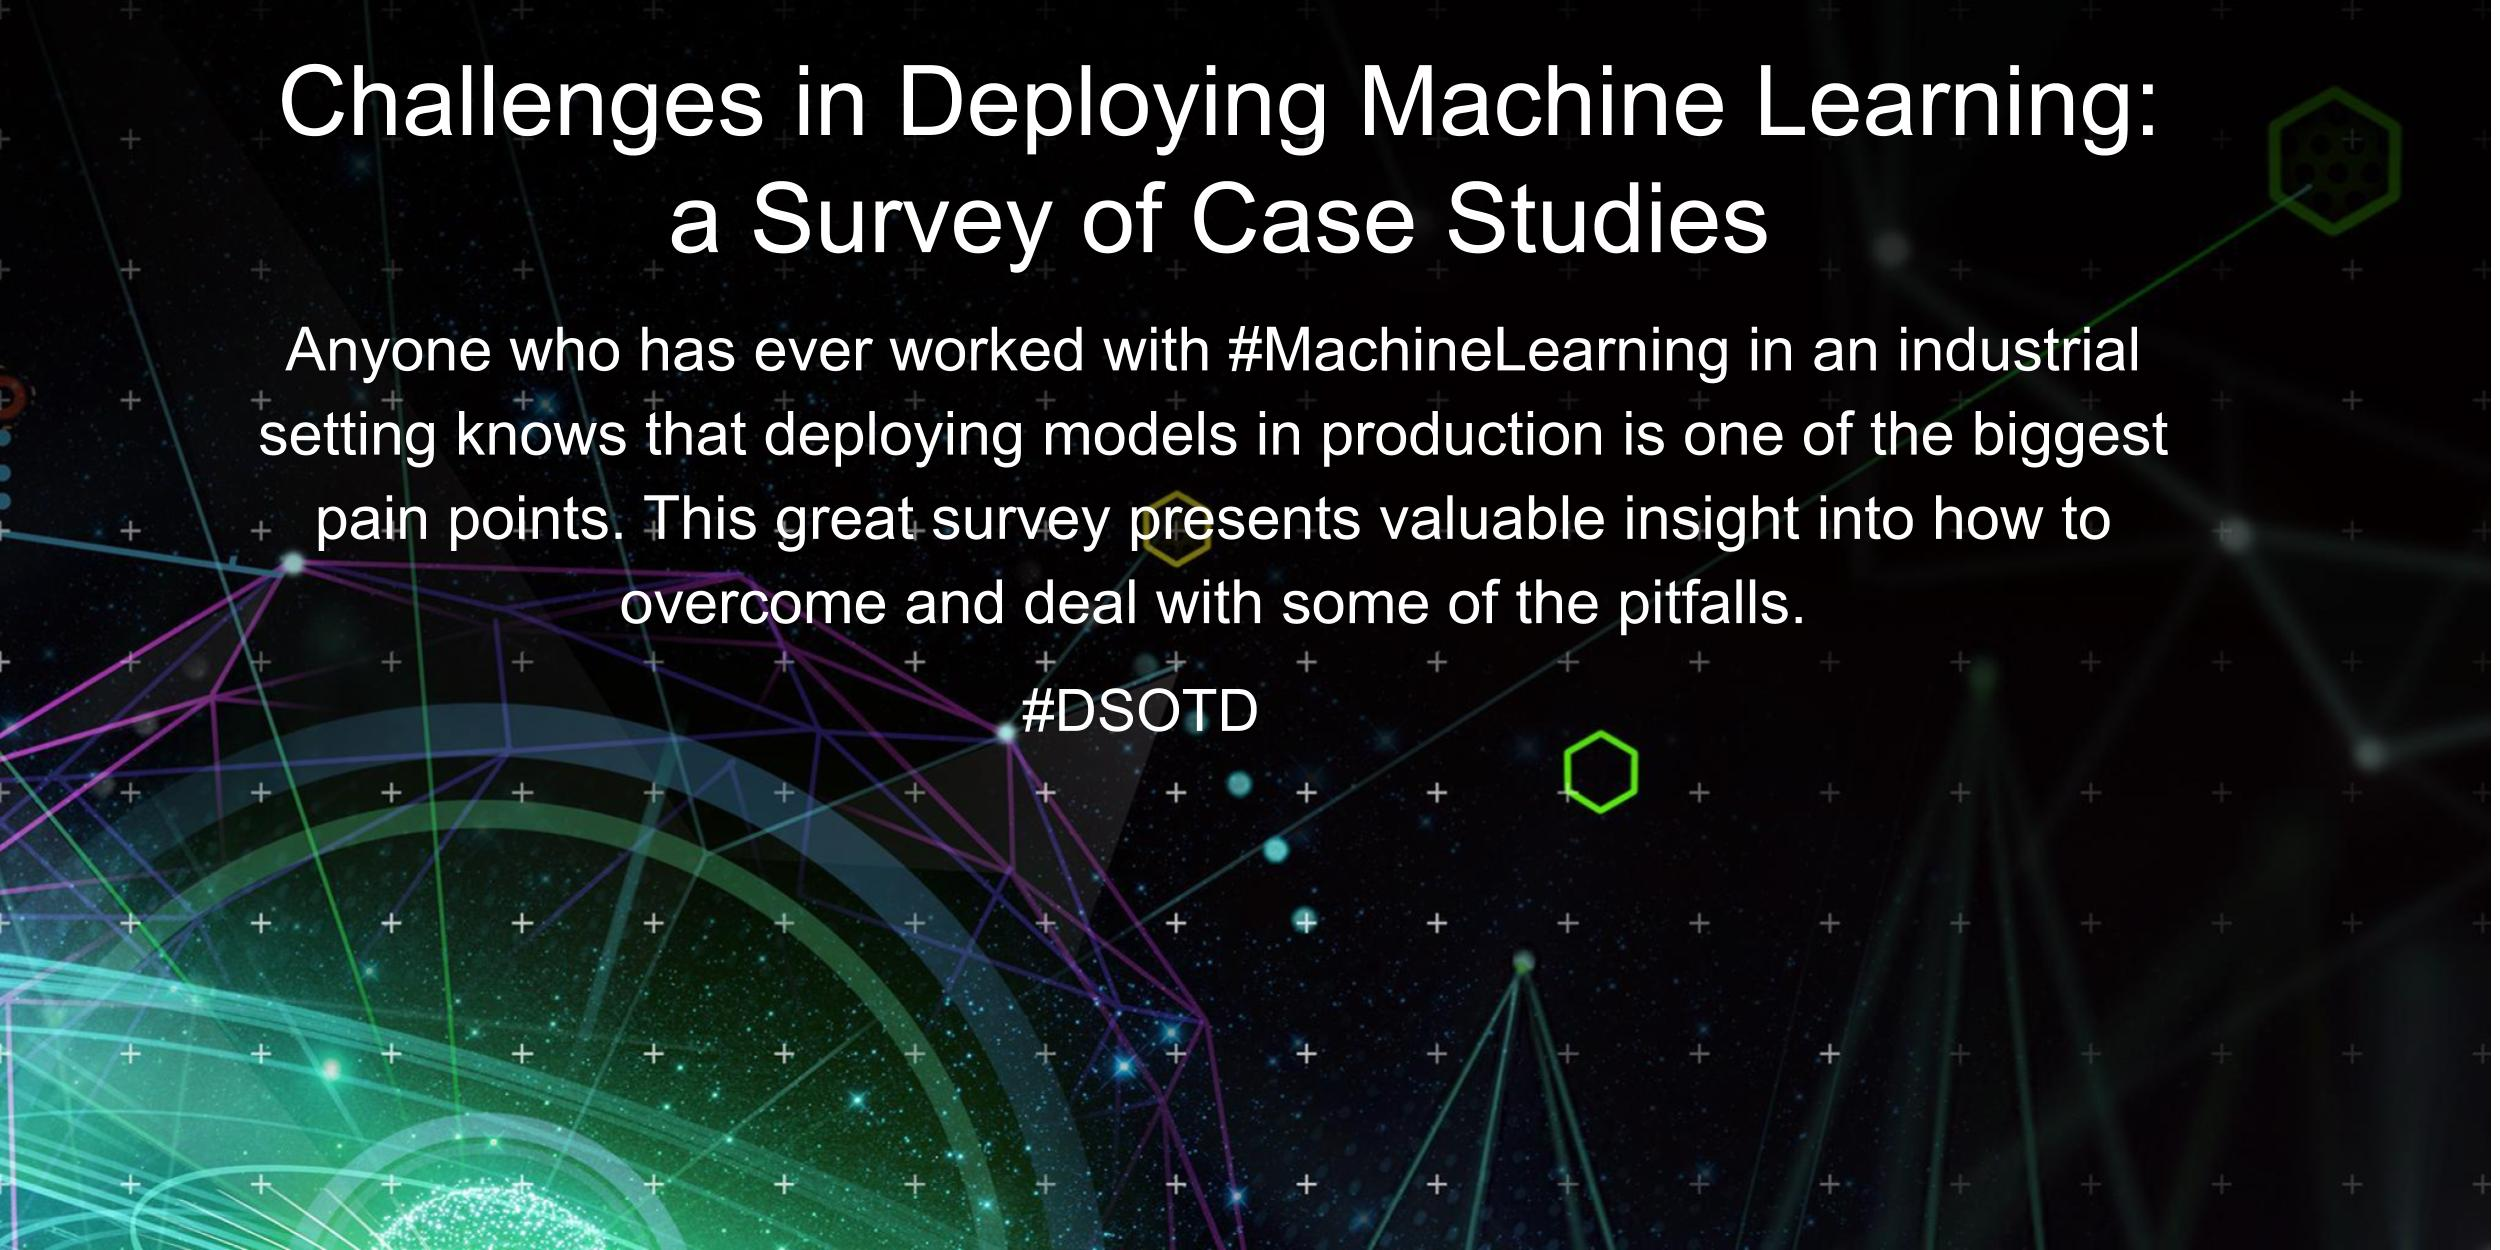 Anyone who has ever worked with #MachineLearning in an industrial setting knows that deploying models in production is one of the biggest pain points. This great survey presents valuable insight into how to overcome and deal with some of the pitfalls.